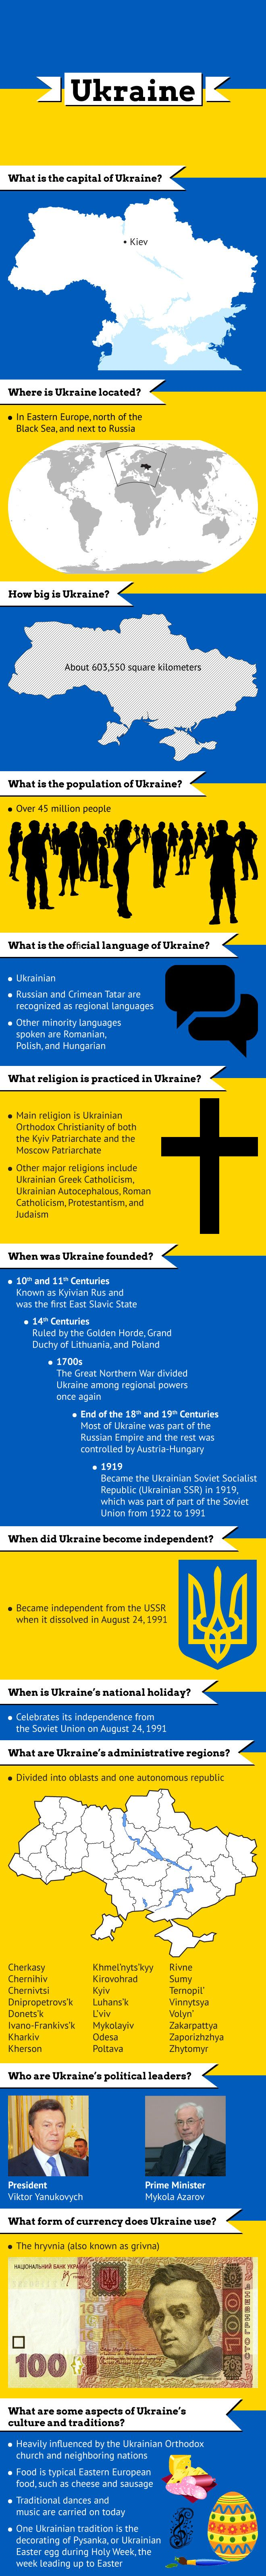 #Infographic of  #Ukraine Fast Facts 	http://www.mapsofworld.com/pages/fast-facts/infographic-of-ukraine-fast-facts/